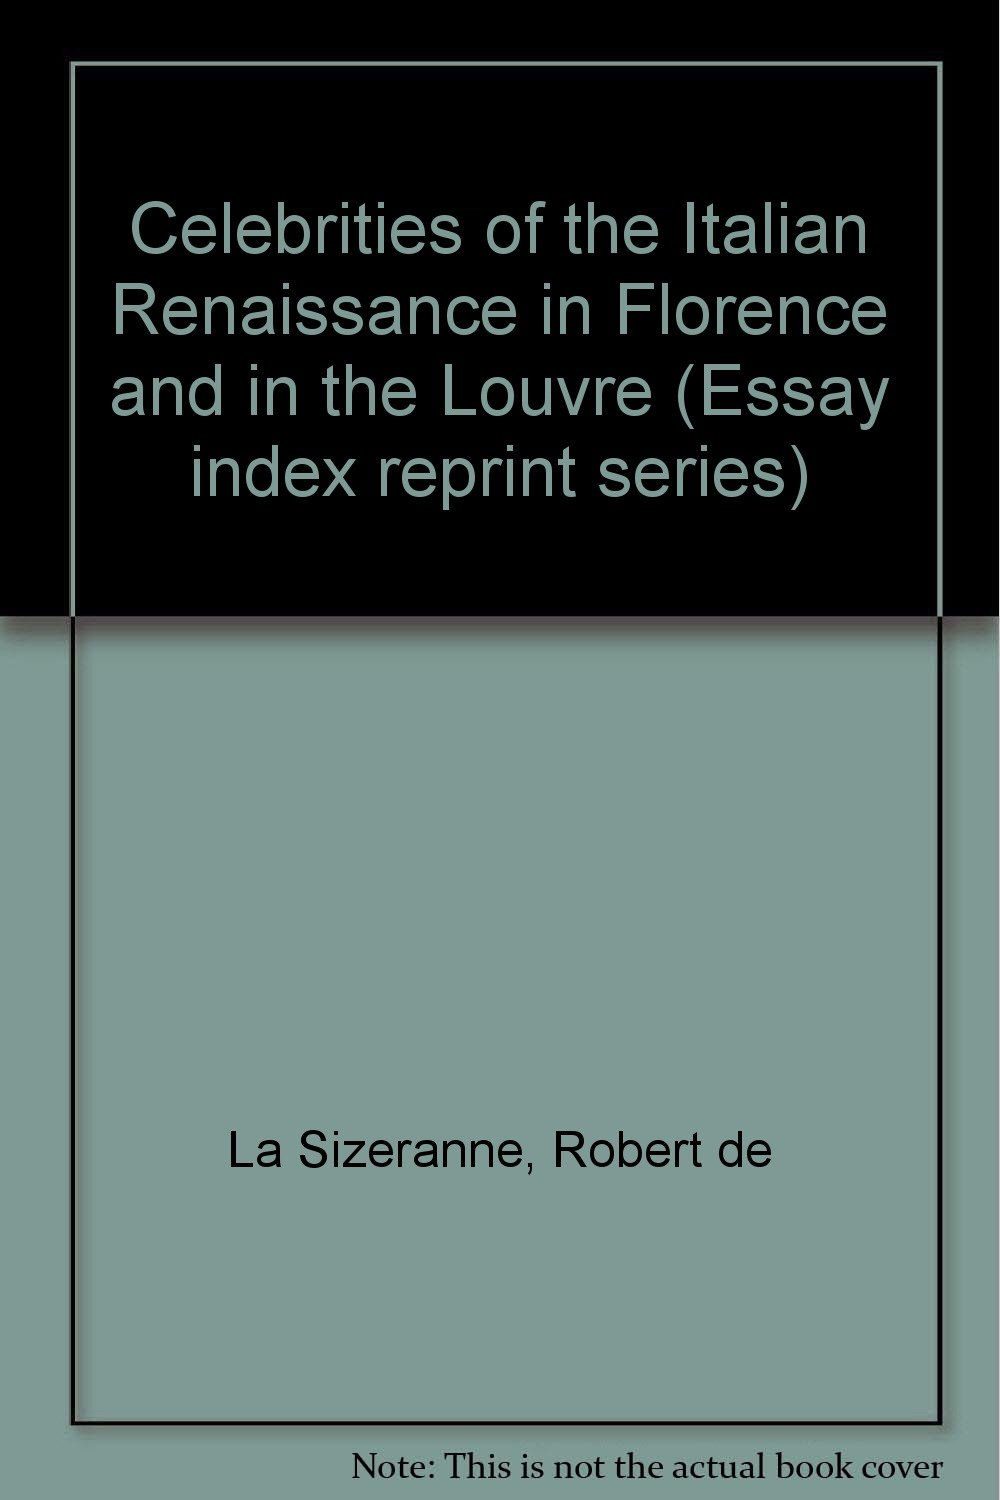 Celebrities of the Italian Renaissance in Florence and in the Louvre ...